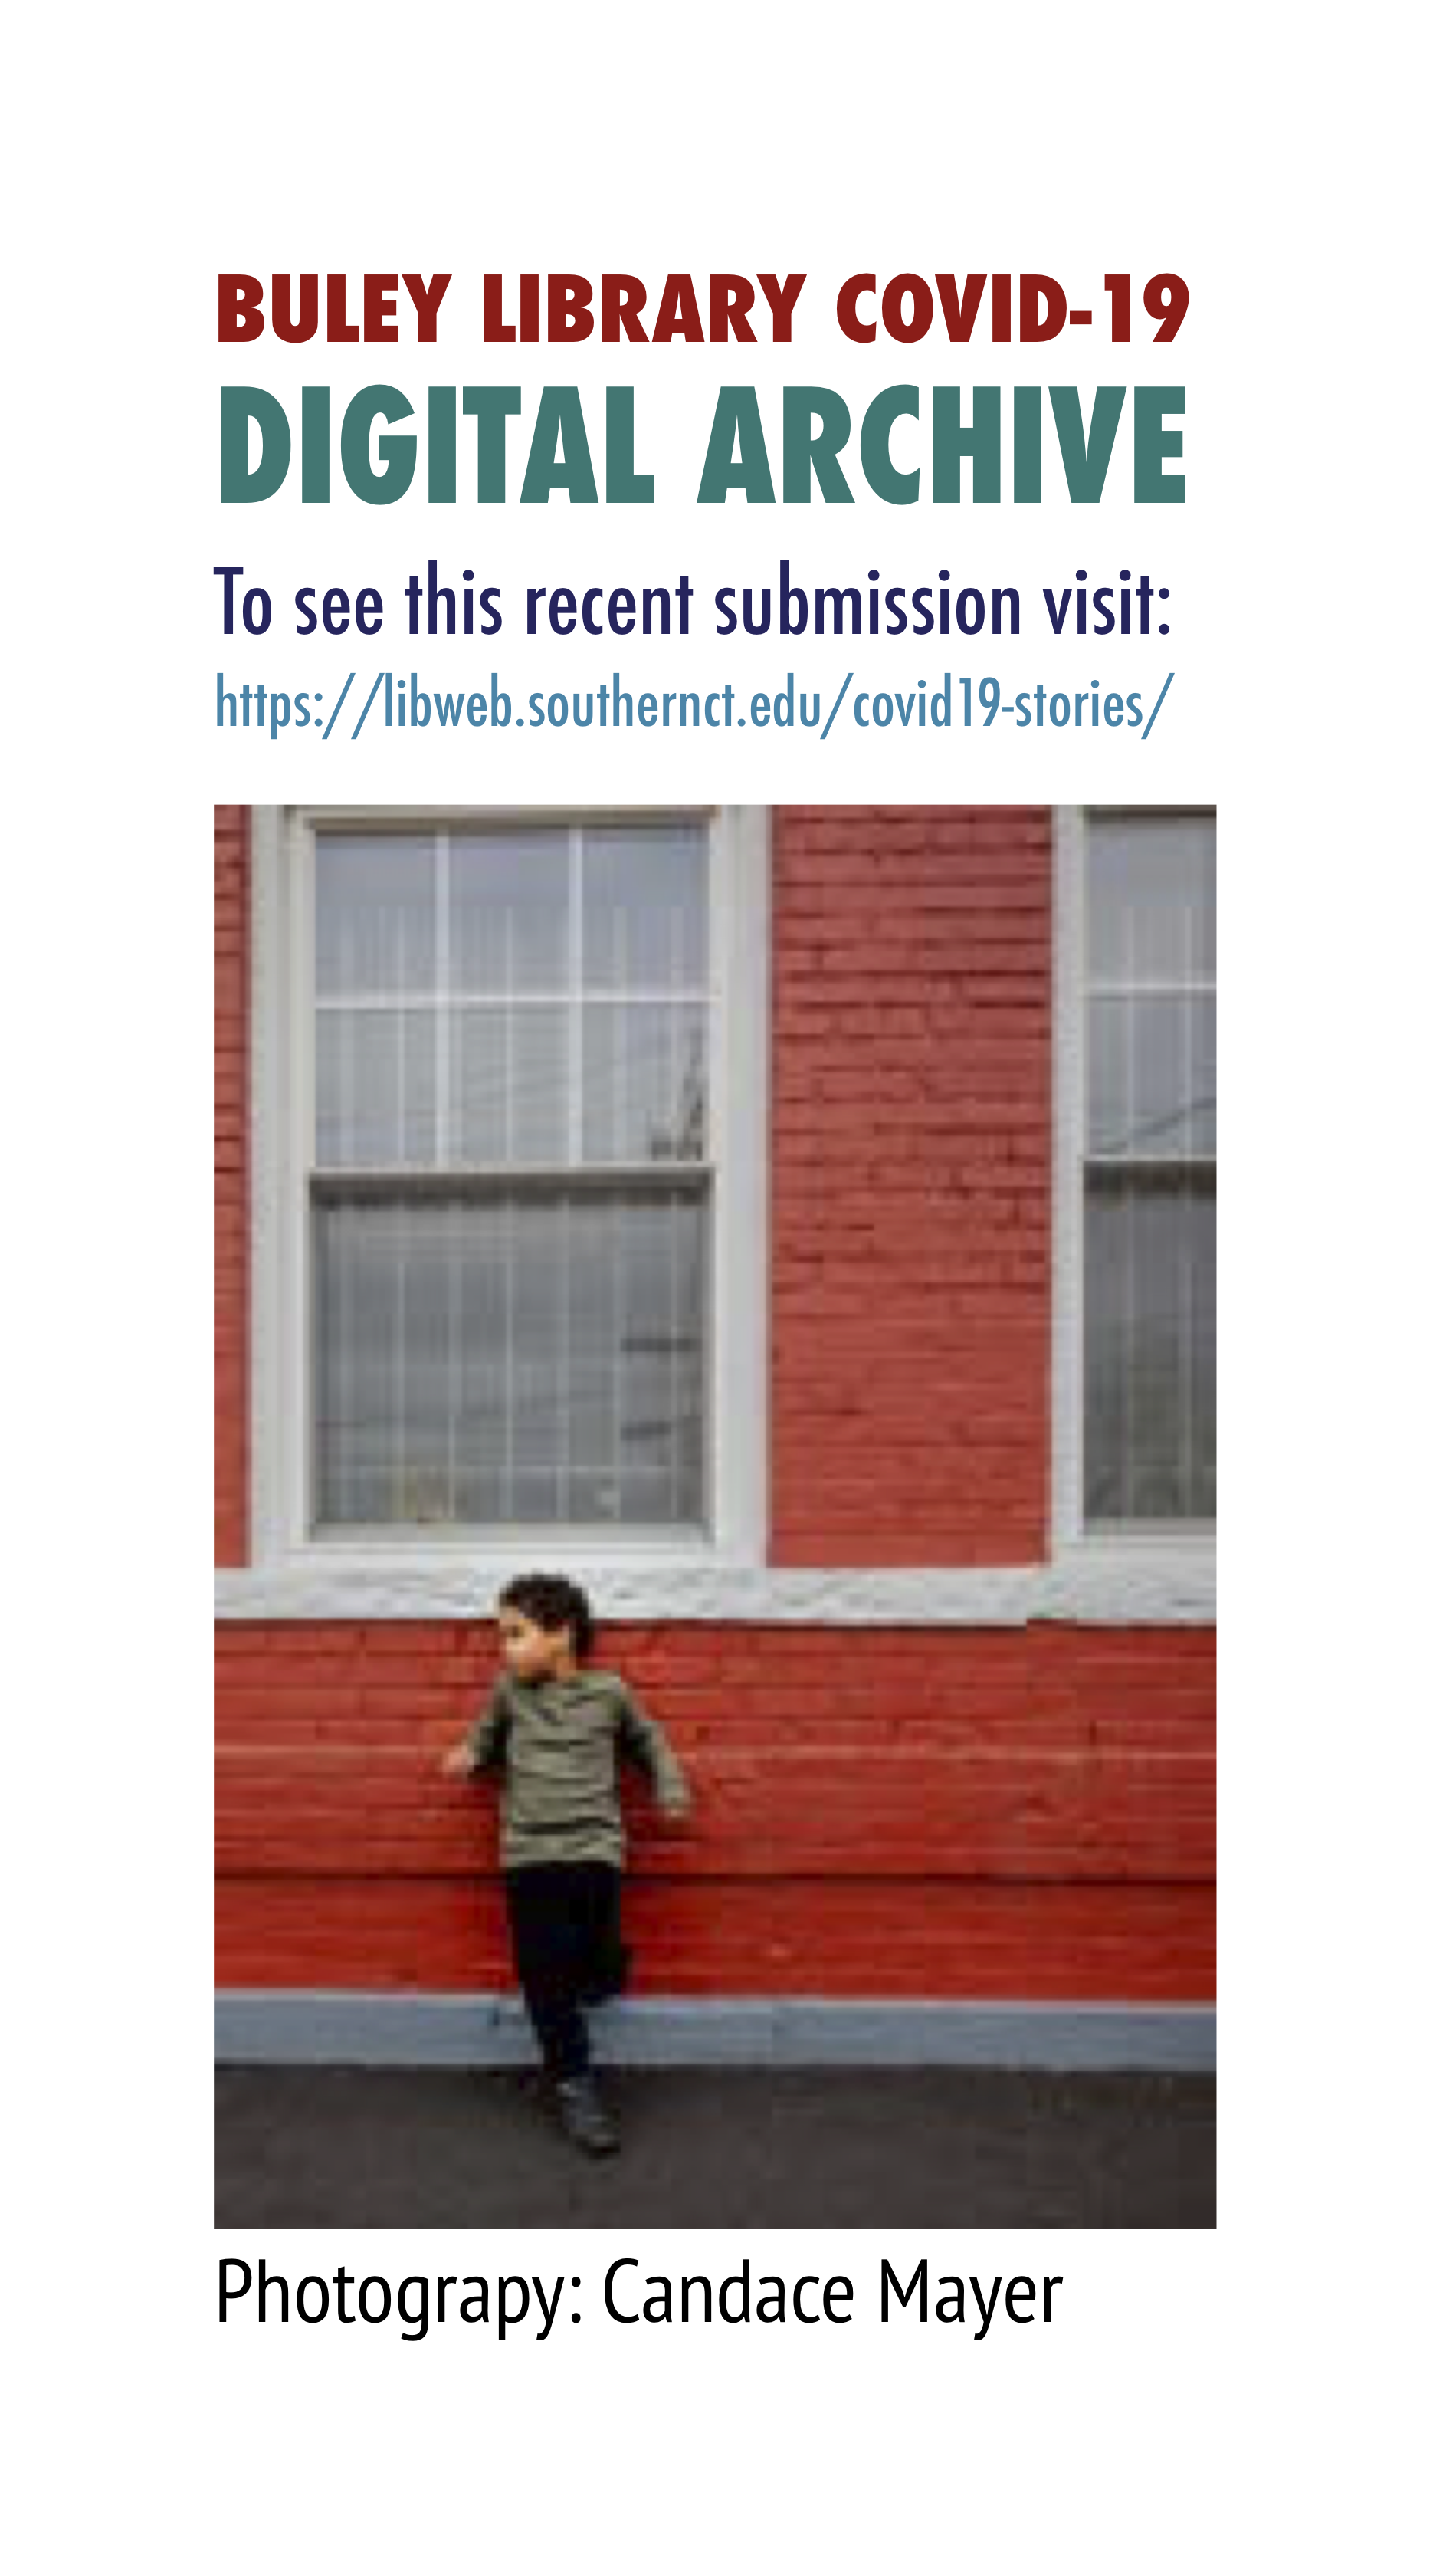 A young child leans against a red building. A photo from Candace Mayer in teh Buley Library COVID-19 Digital Archive. Click to view more.